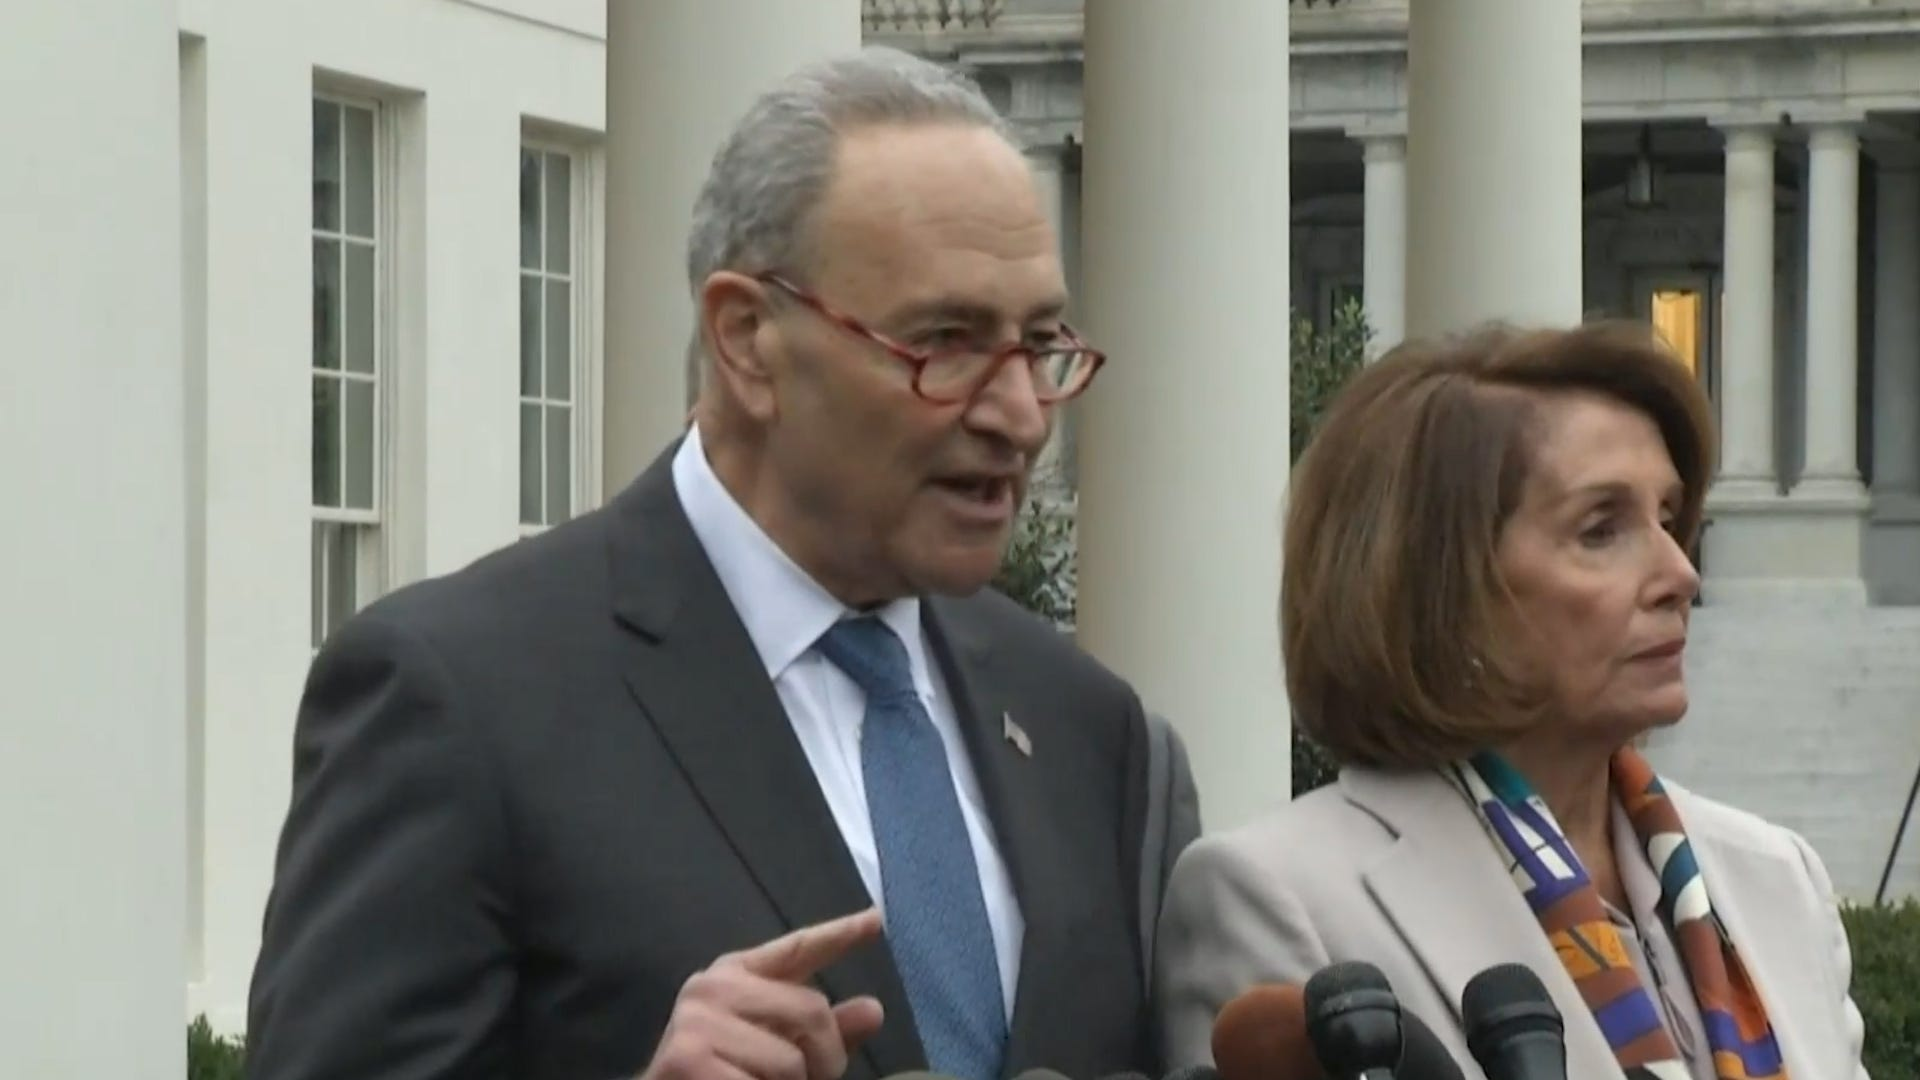 Democrat leaders say they have a new plan to end government shutdown